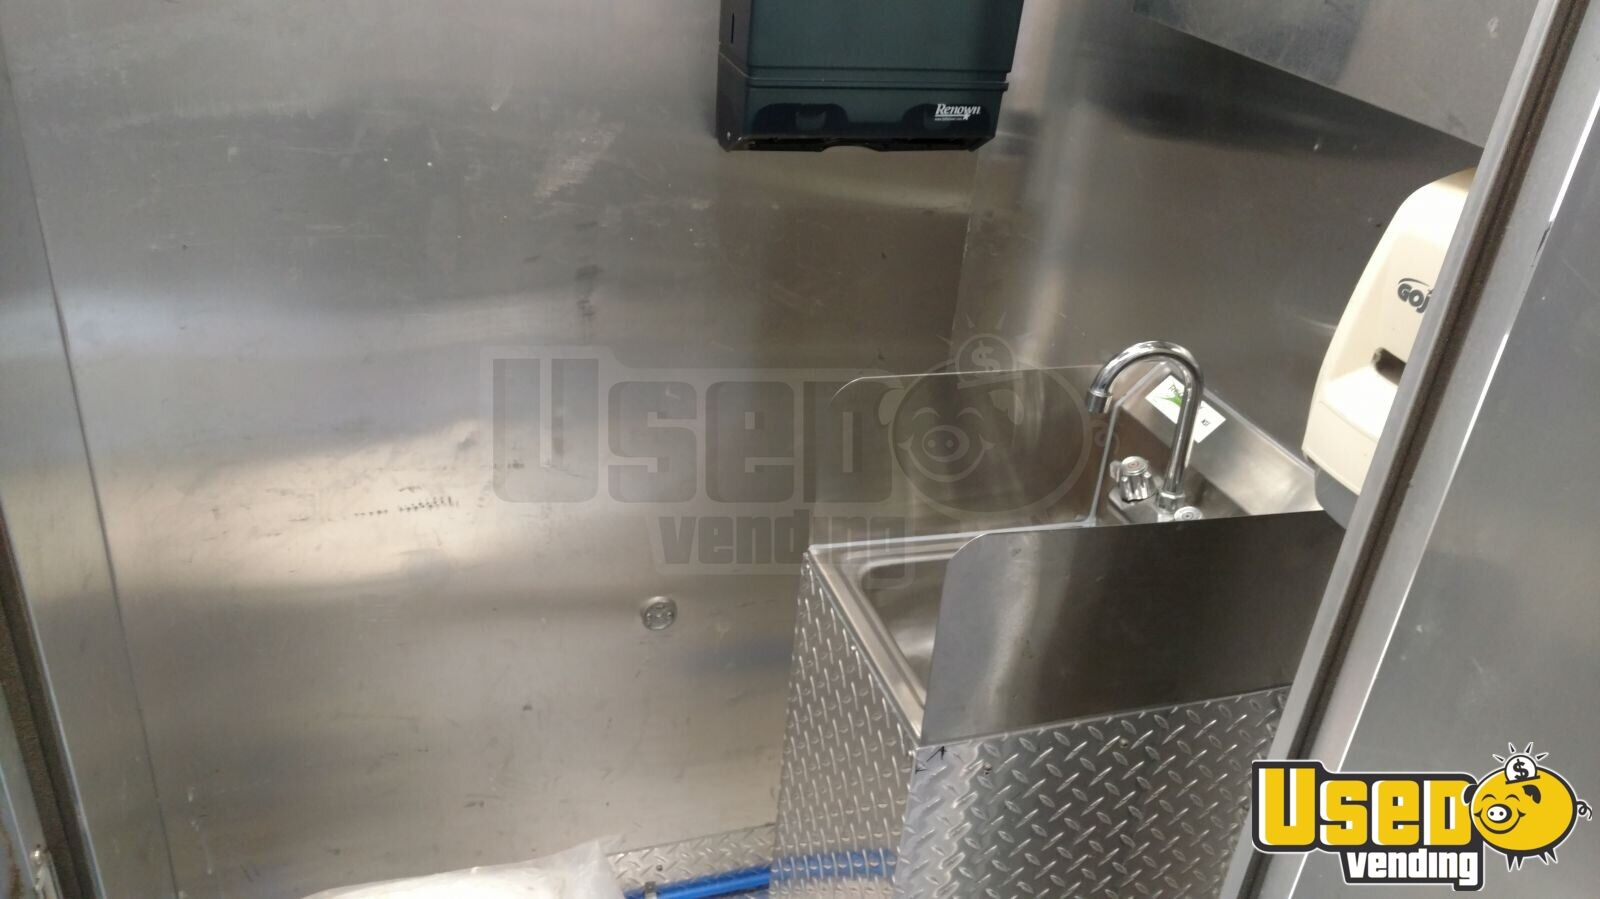 2013 Kitchen Food Trailer Gfi Outlets Oklahoma for Sale - 24